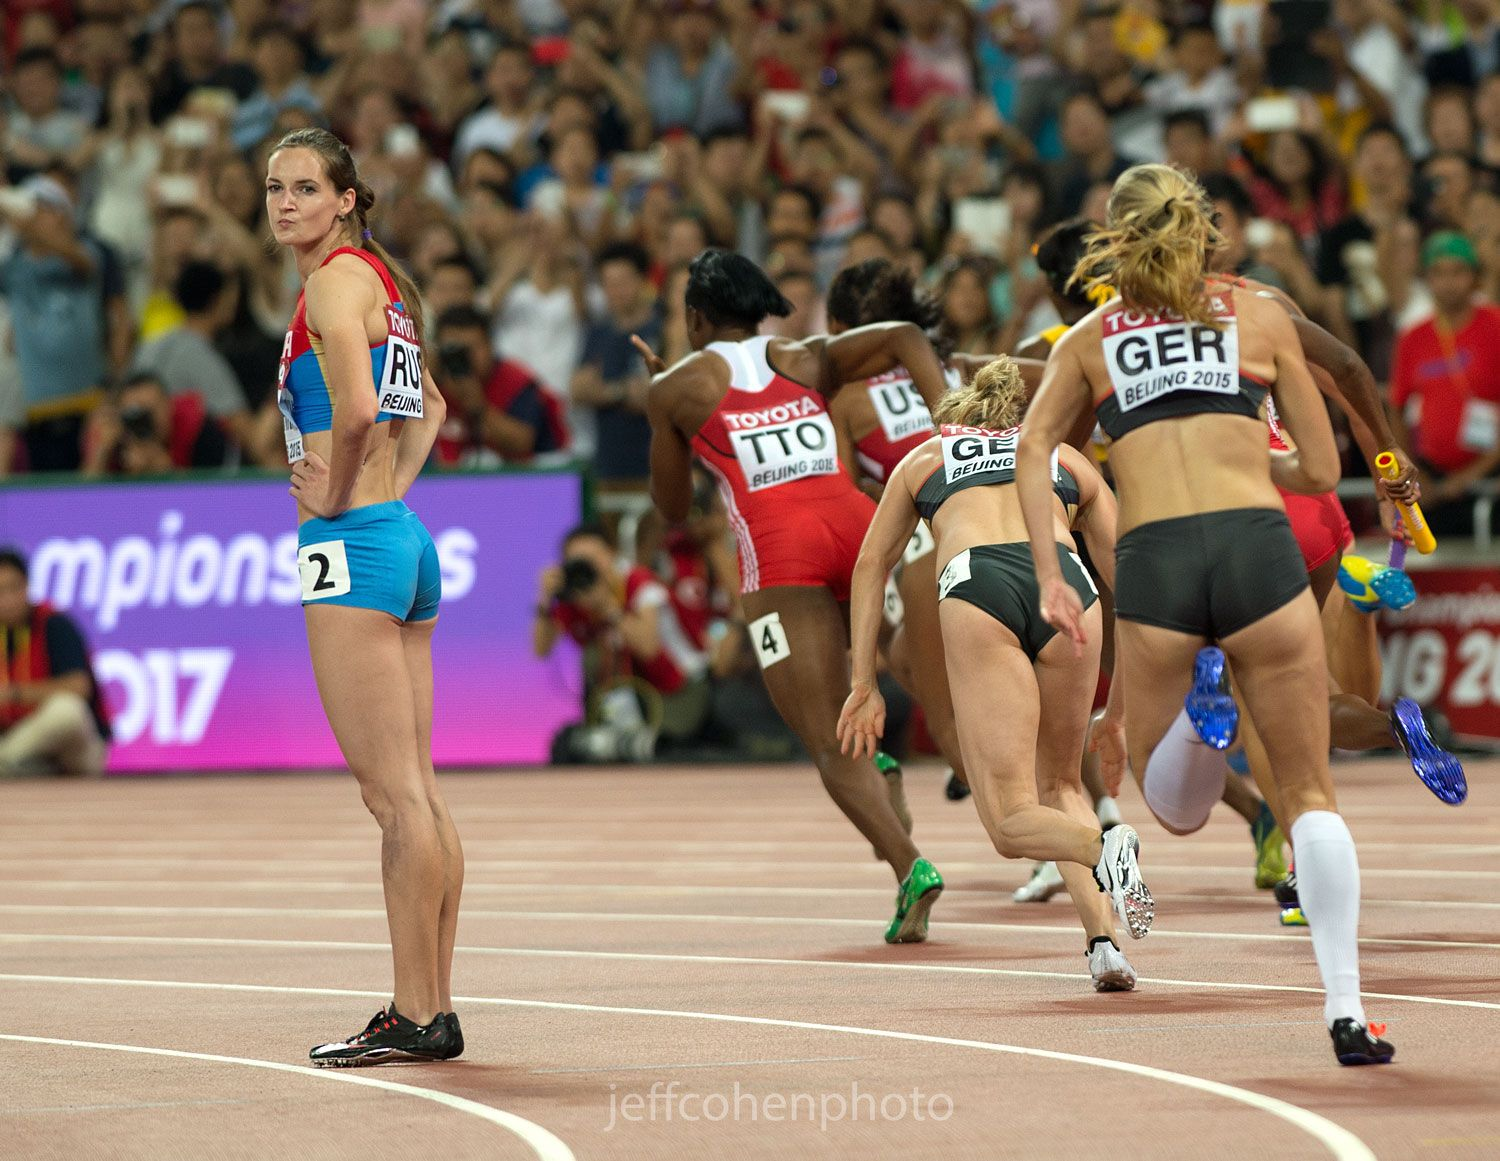 1beijing2015_night_8_4x100w_rus_jeff_cohen_photo_32251_web.jpg